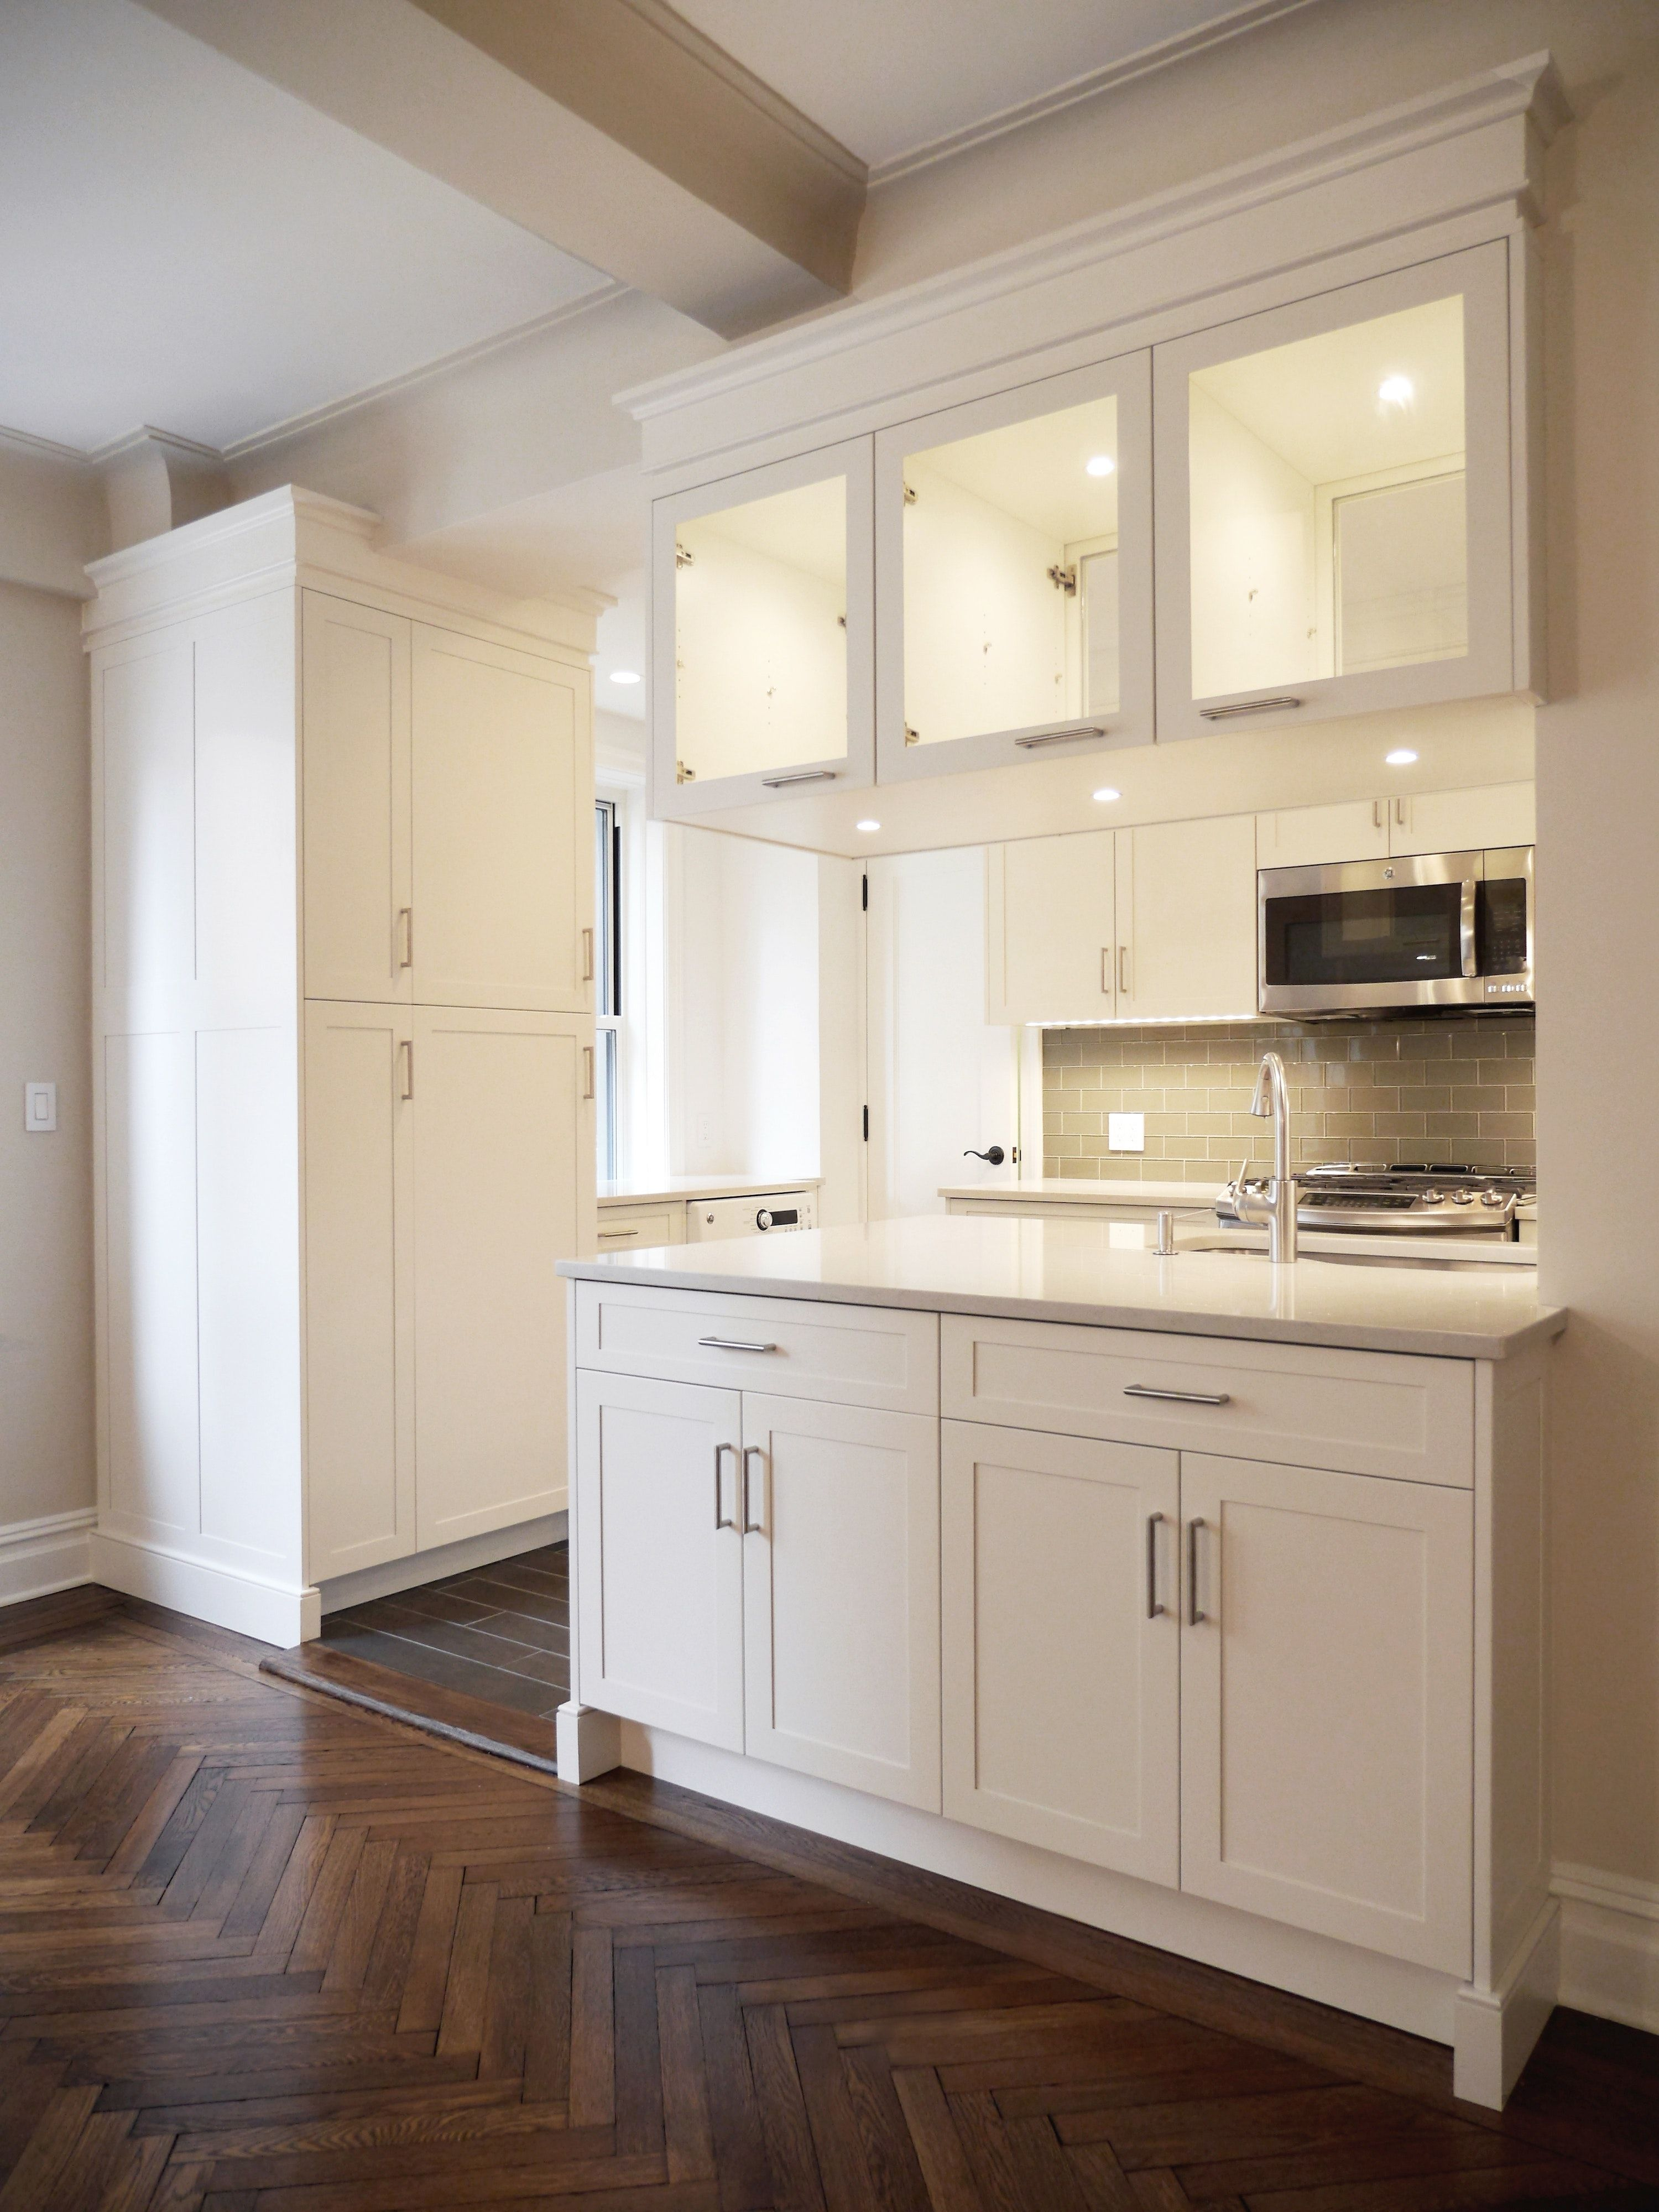 custom kitchen cabinetry sink size contemporary open white by paula mcdonald design build interiors lookbook dering hall